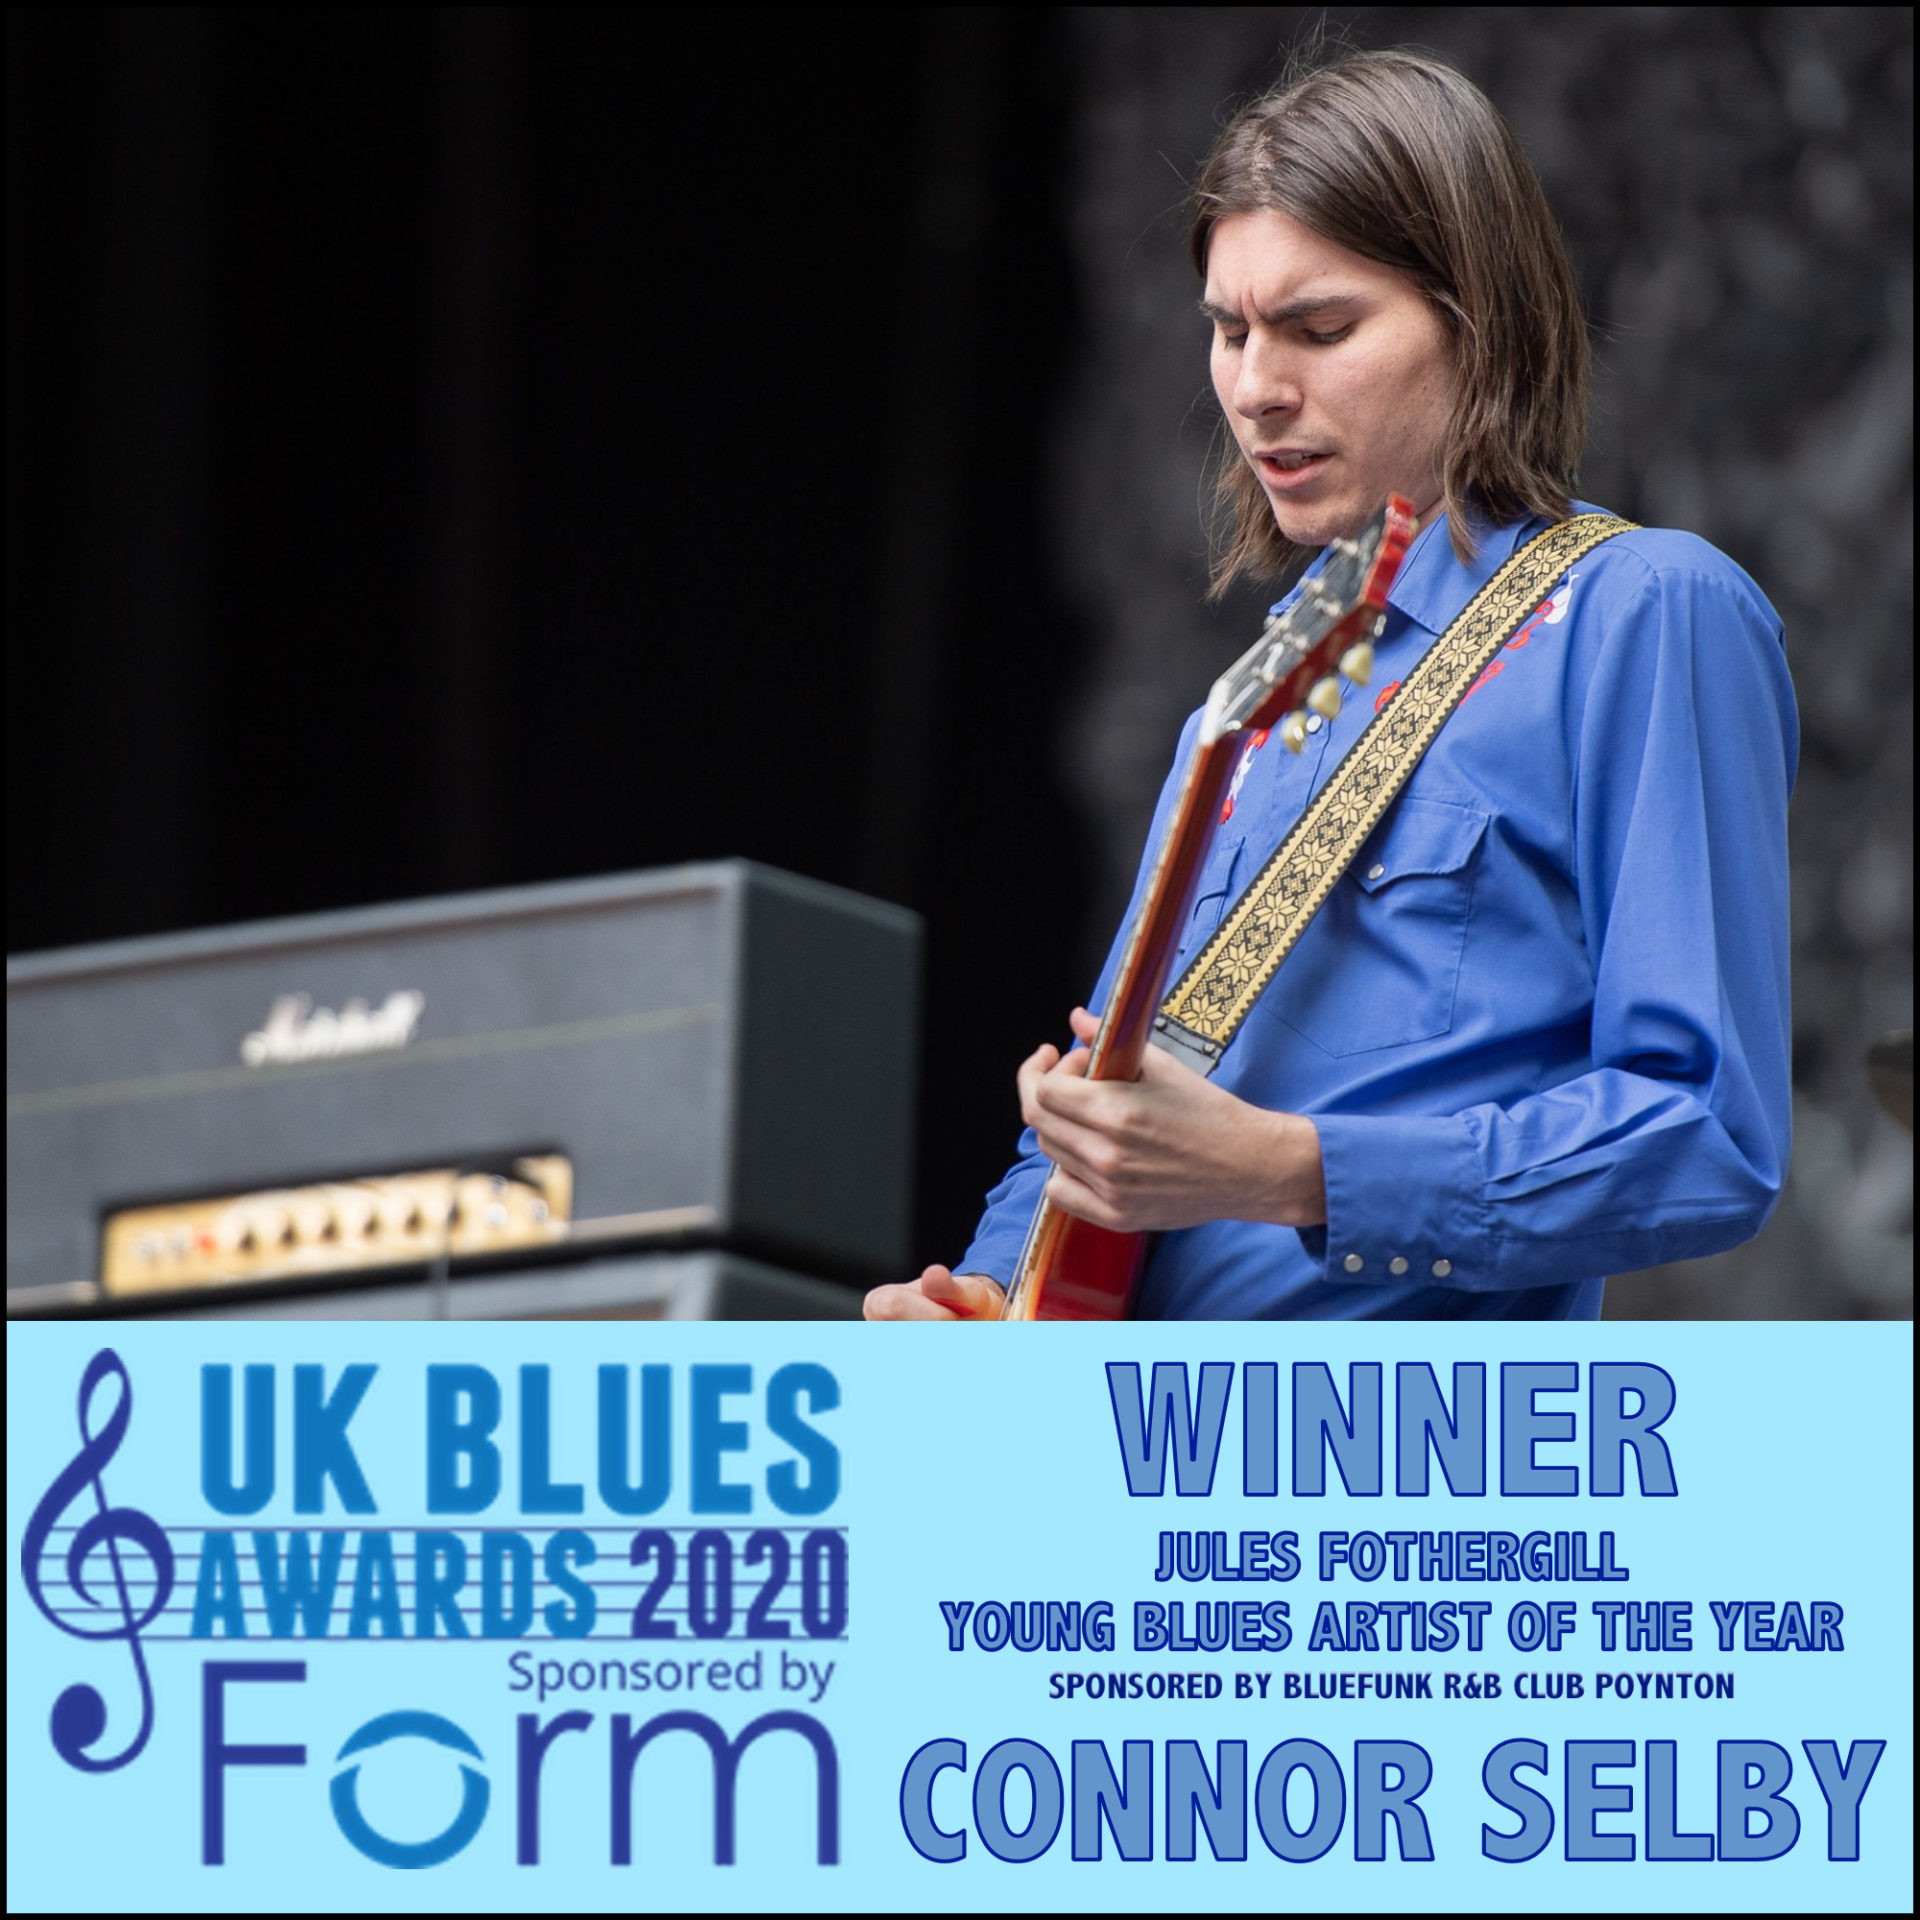 image of ukblues award winner 2020 connor selby